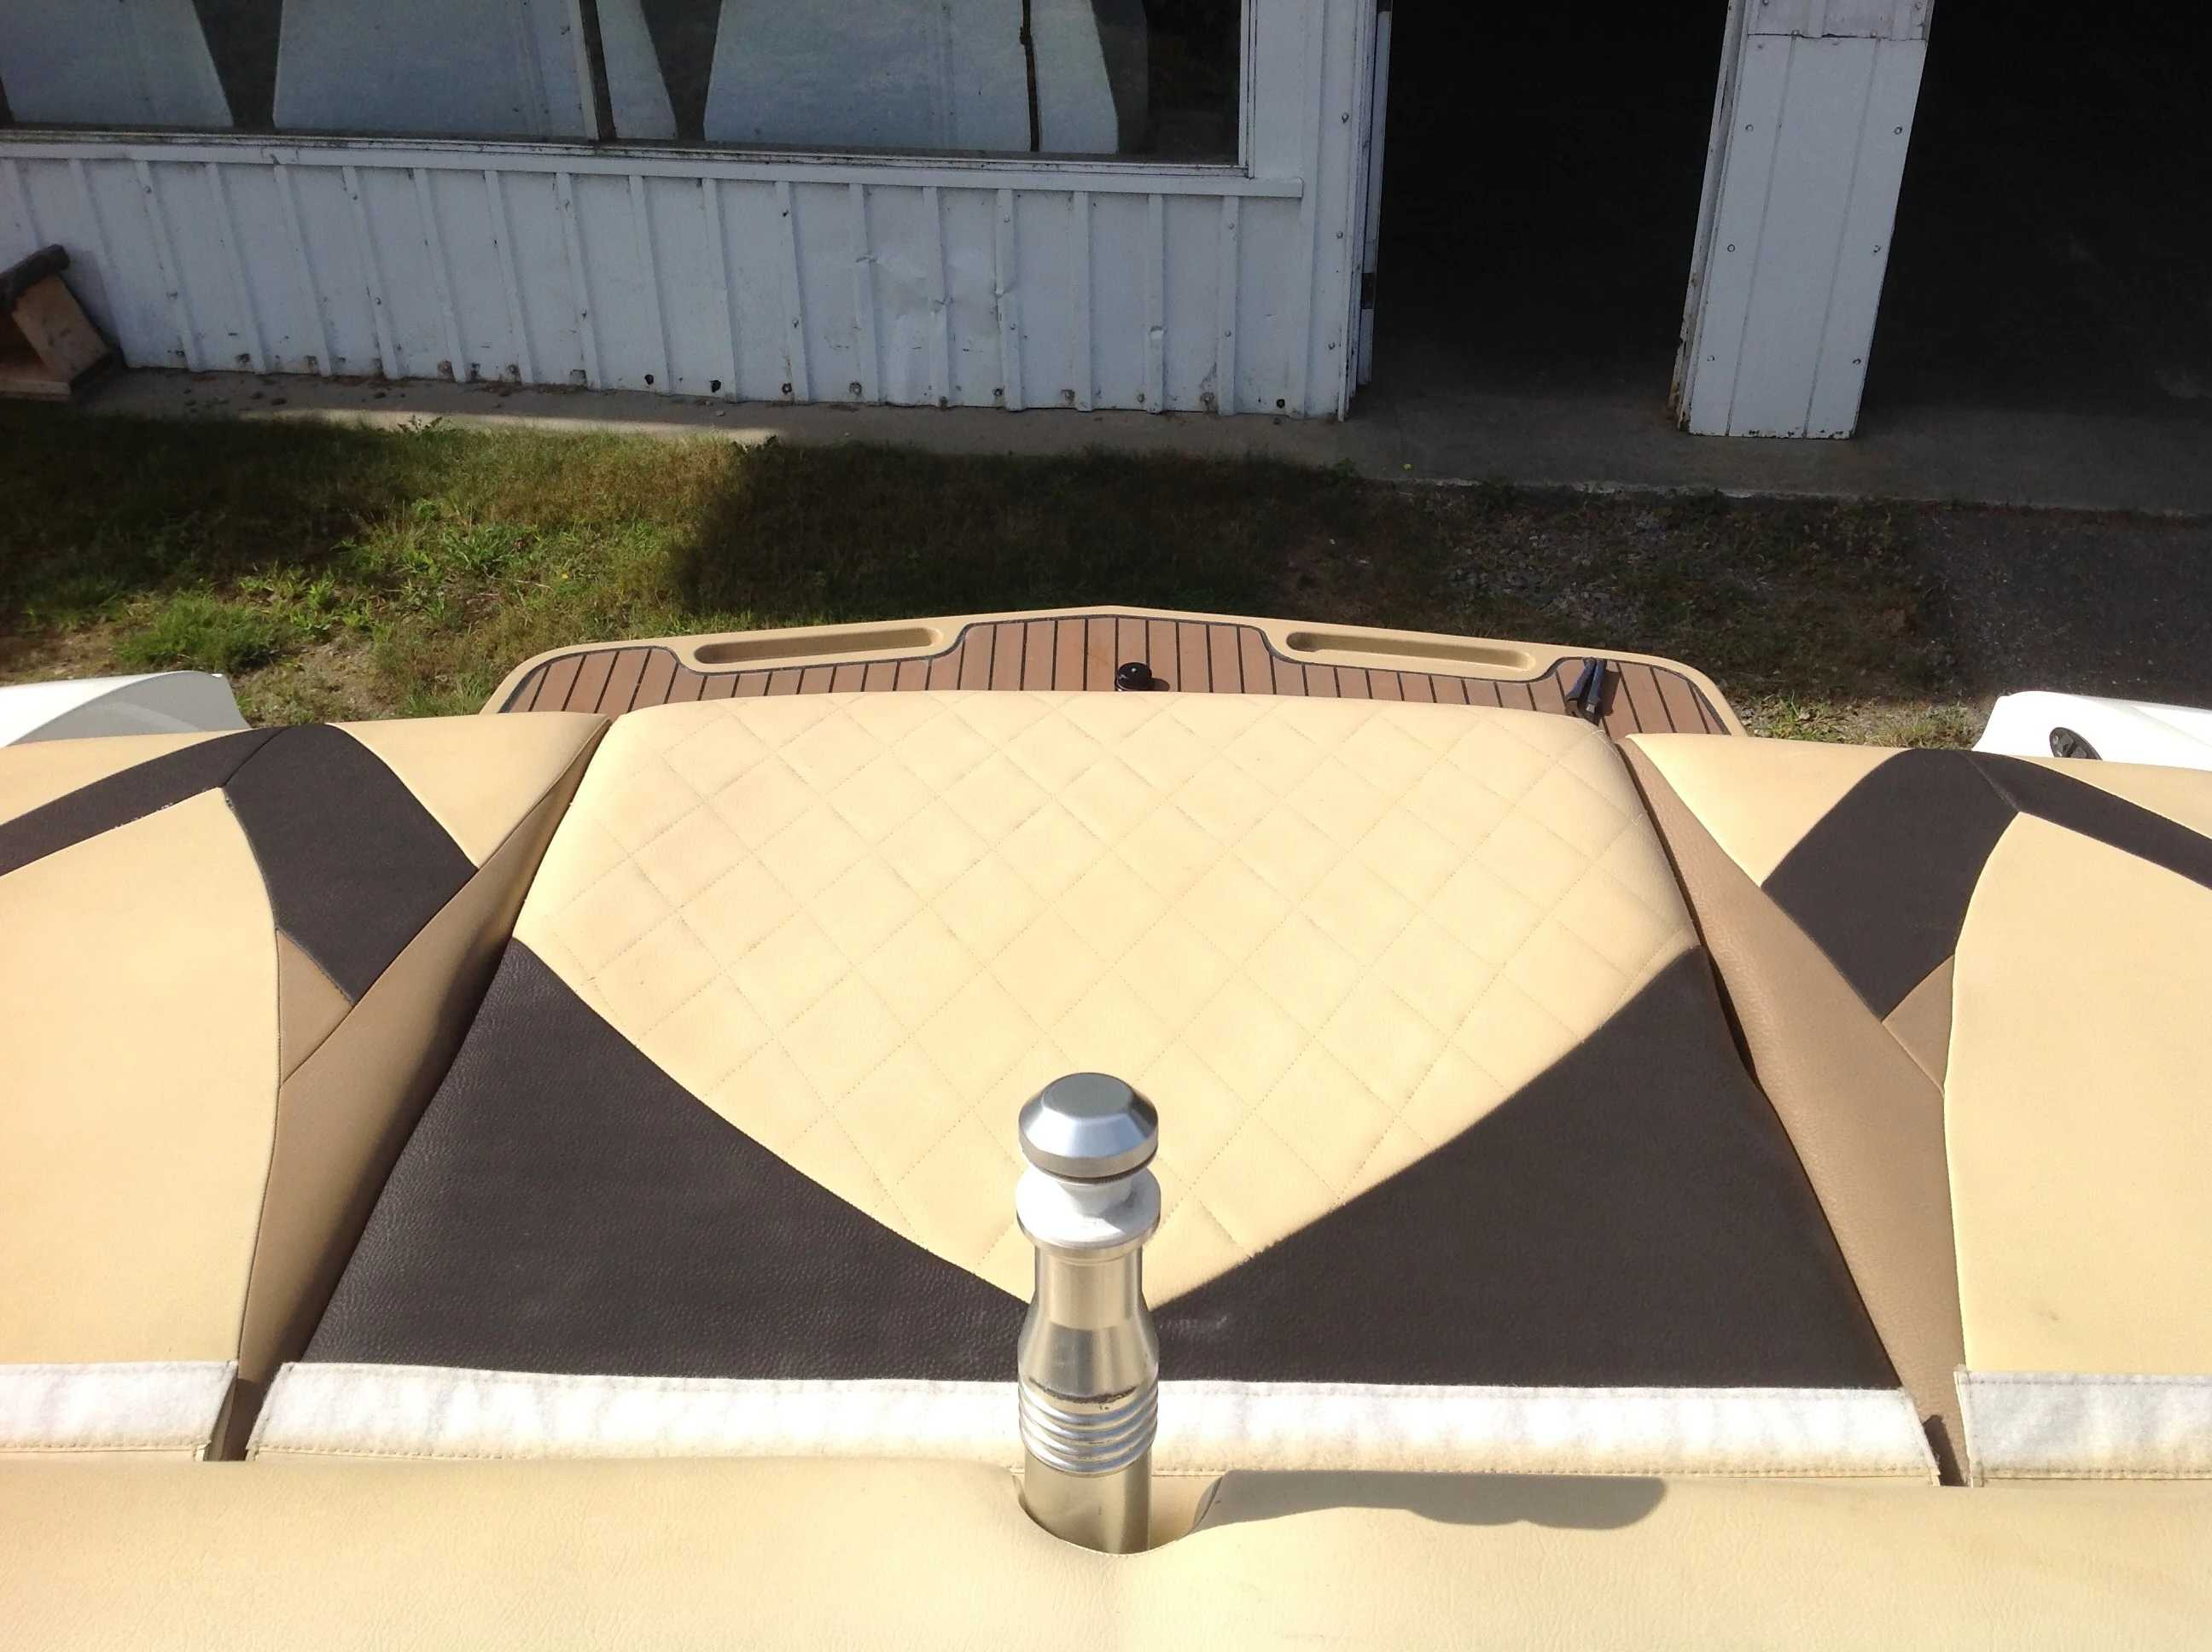 2010 Mastercraft boat for sale, model of the boat is Maristar 235 & Image # 14 of 16